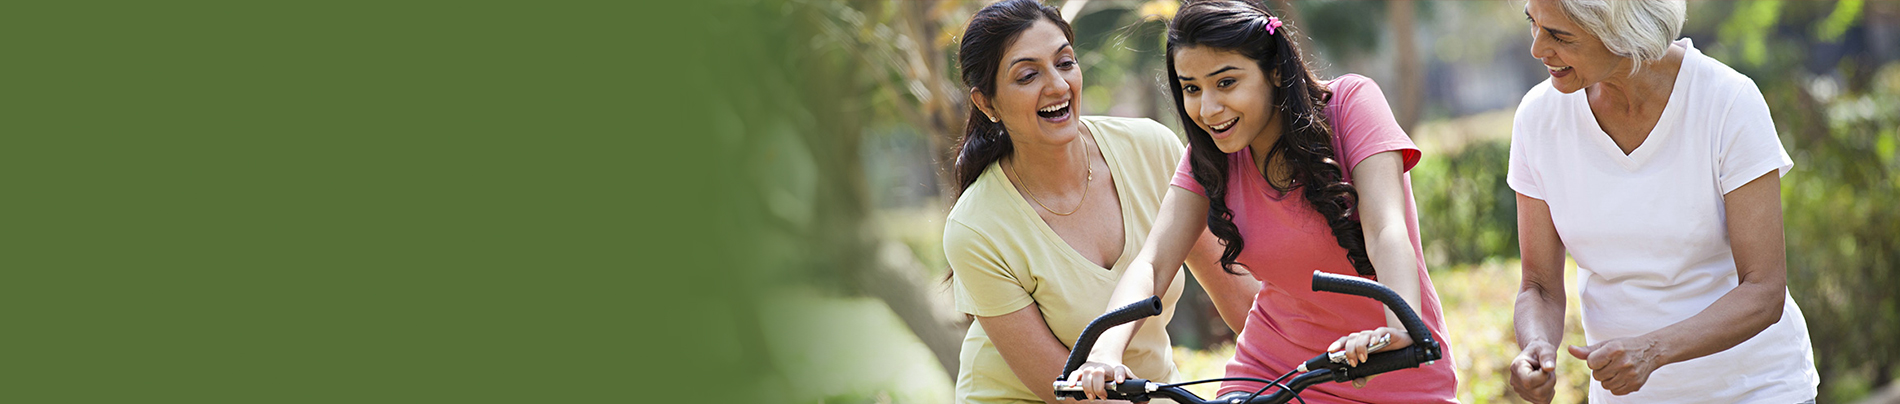 Best Physiotherapy Hospital in Delhi NCR, India | Best Physiotherapy Hospital in Delhi NCR, India